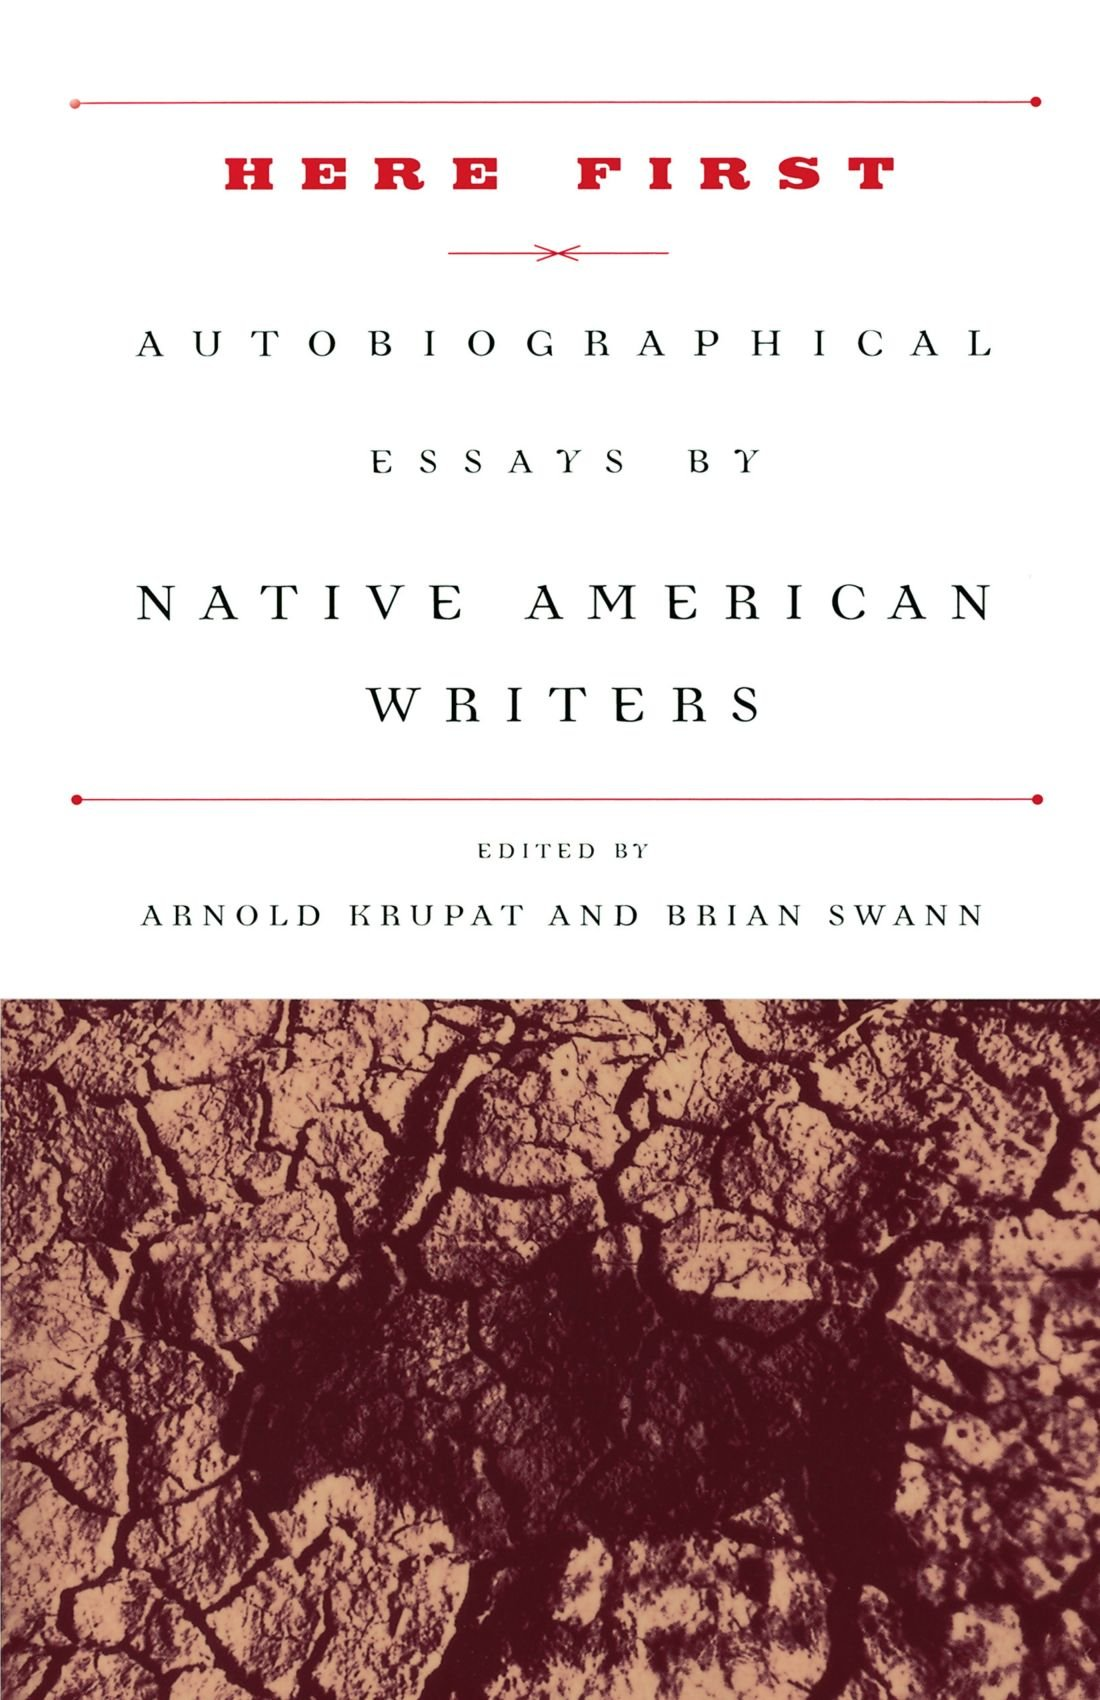 native american essays here first autobiographical essays by  here first autobiographical essays by native american writers here first autobiographical essays by native american writers